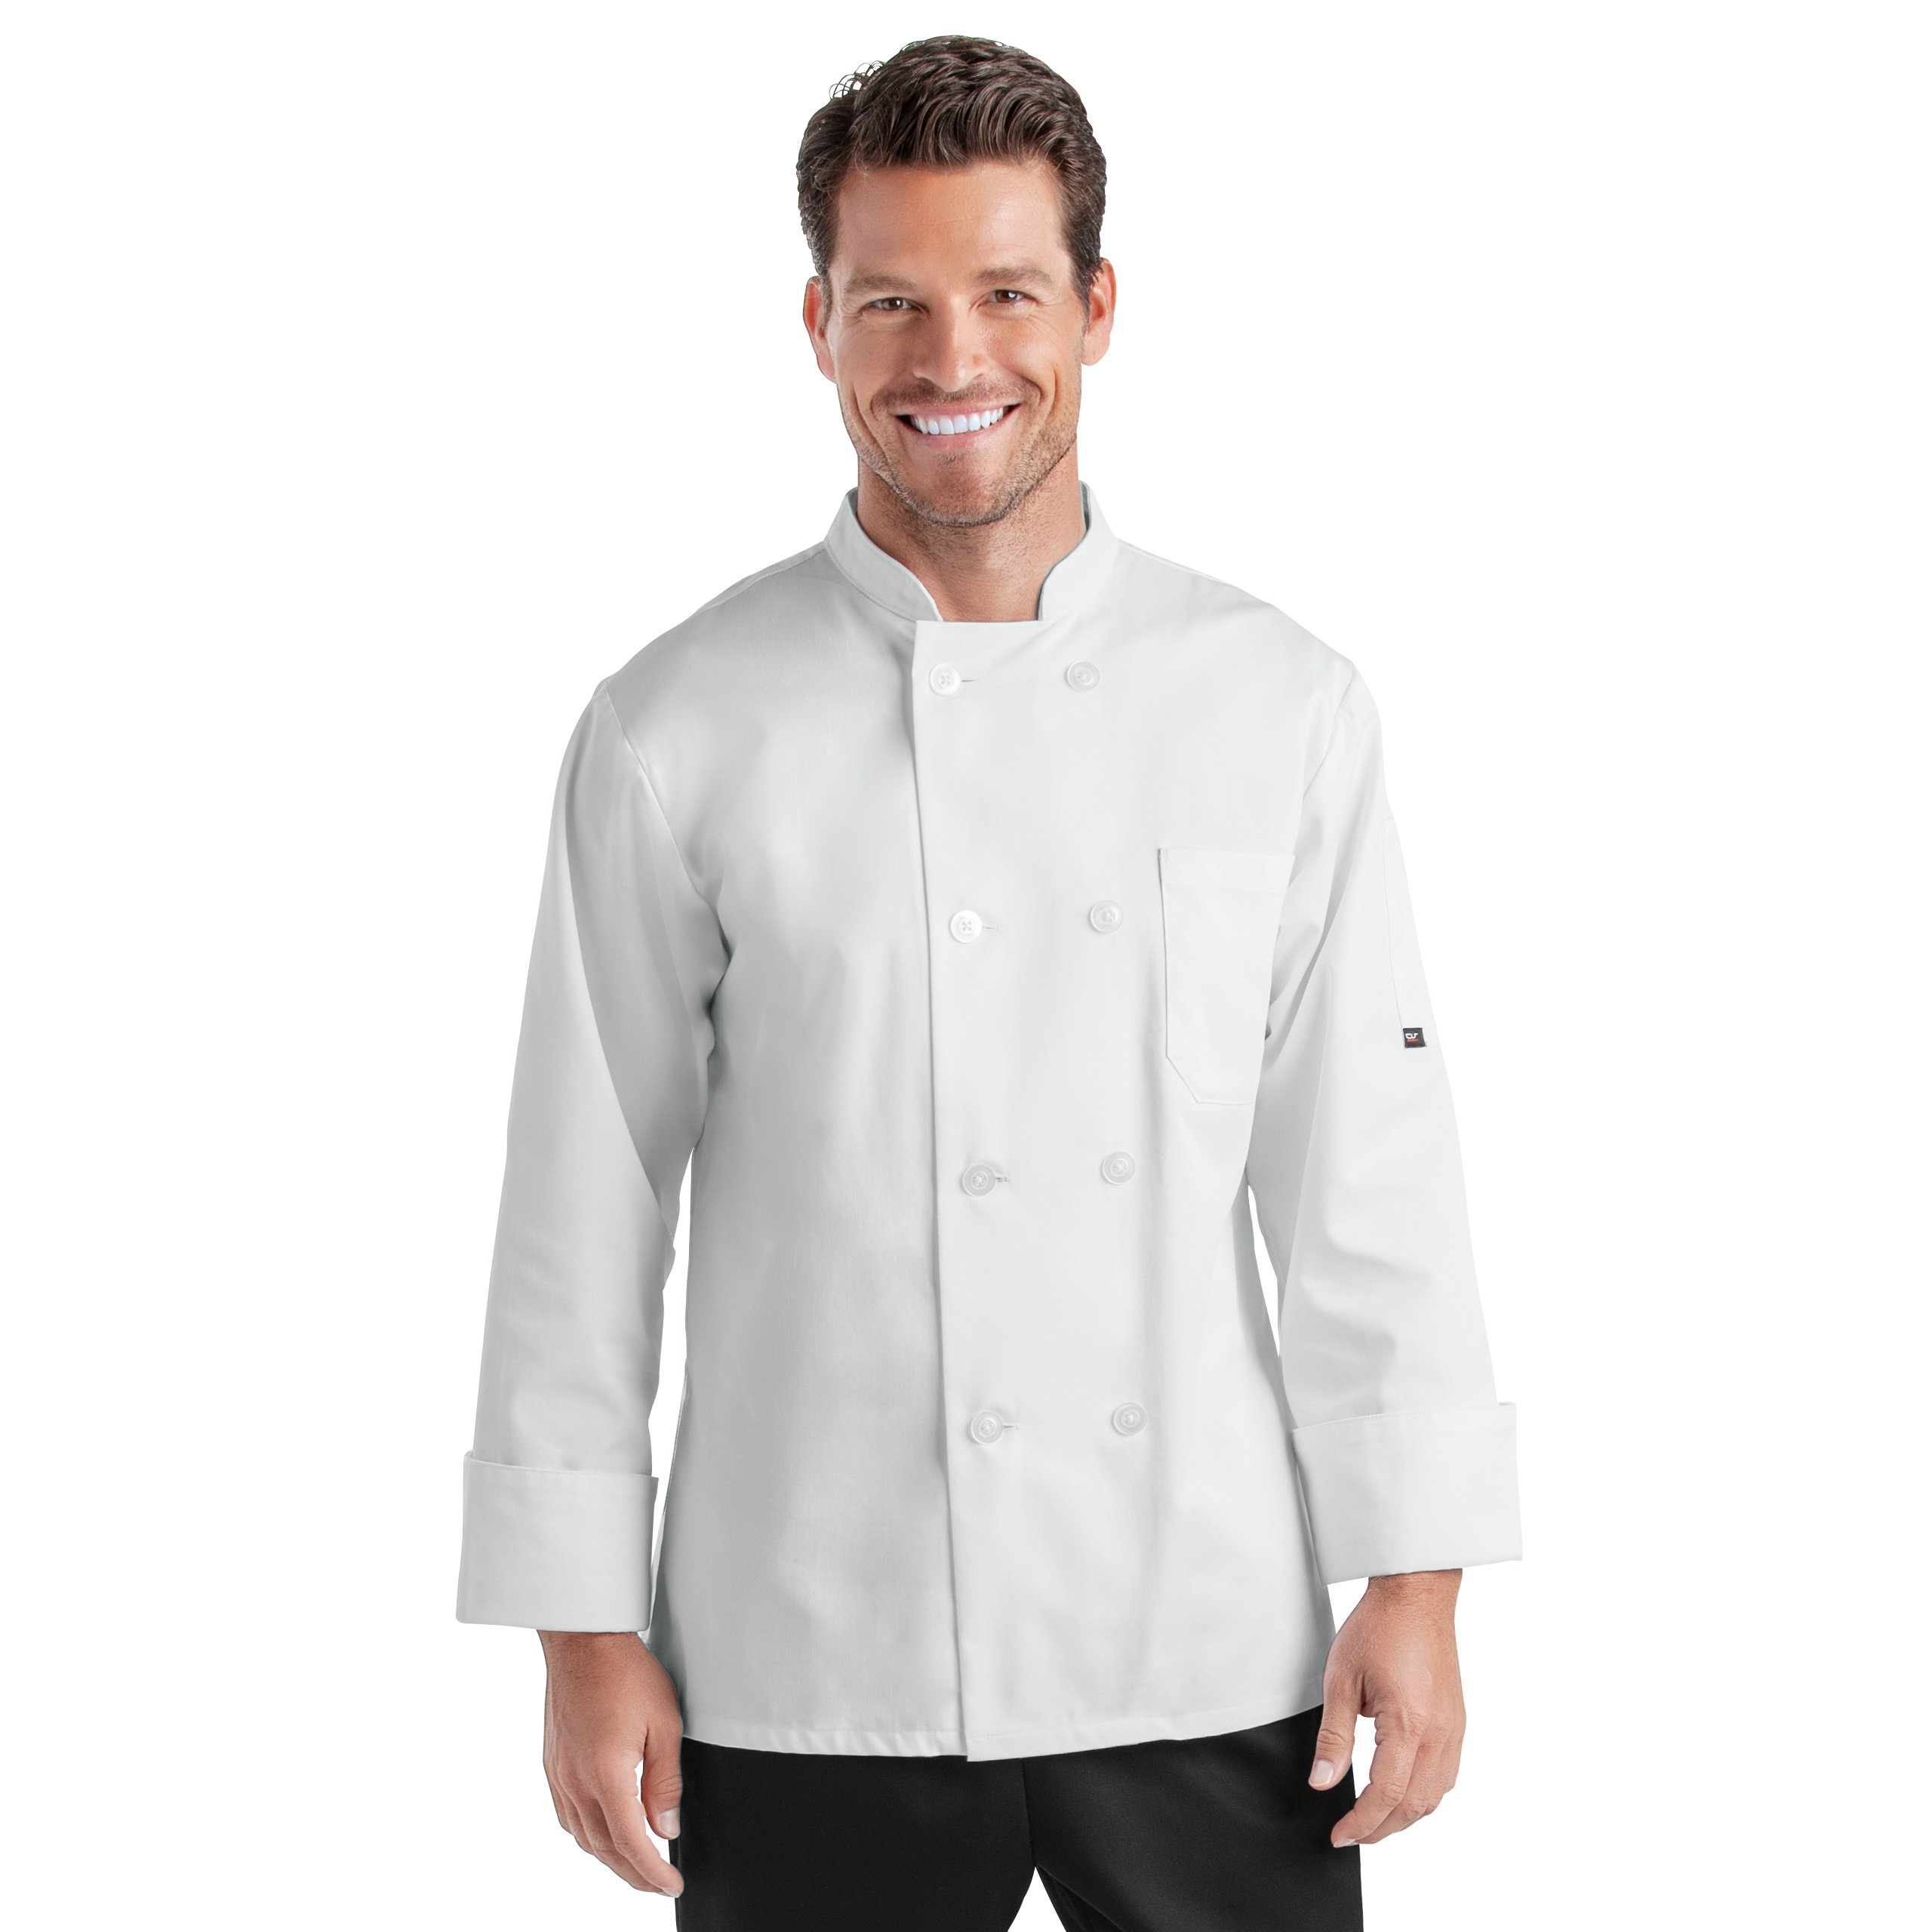 Unisex Long Sleeve Chef Coat/Double Breasted/Plastic Button Reversible Front Closure (S-2X, 2 Colors) (White, Medium) by On The Line (Image #7)